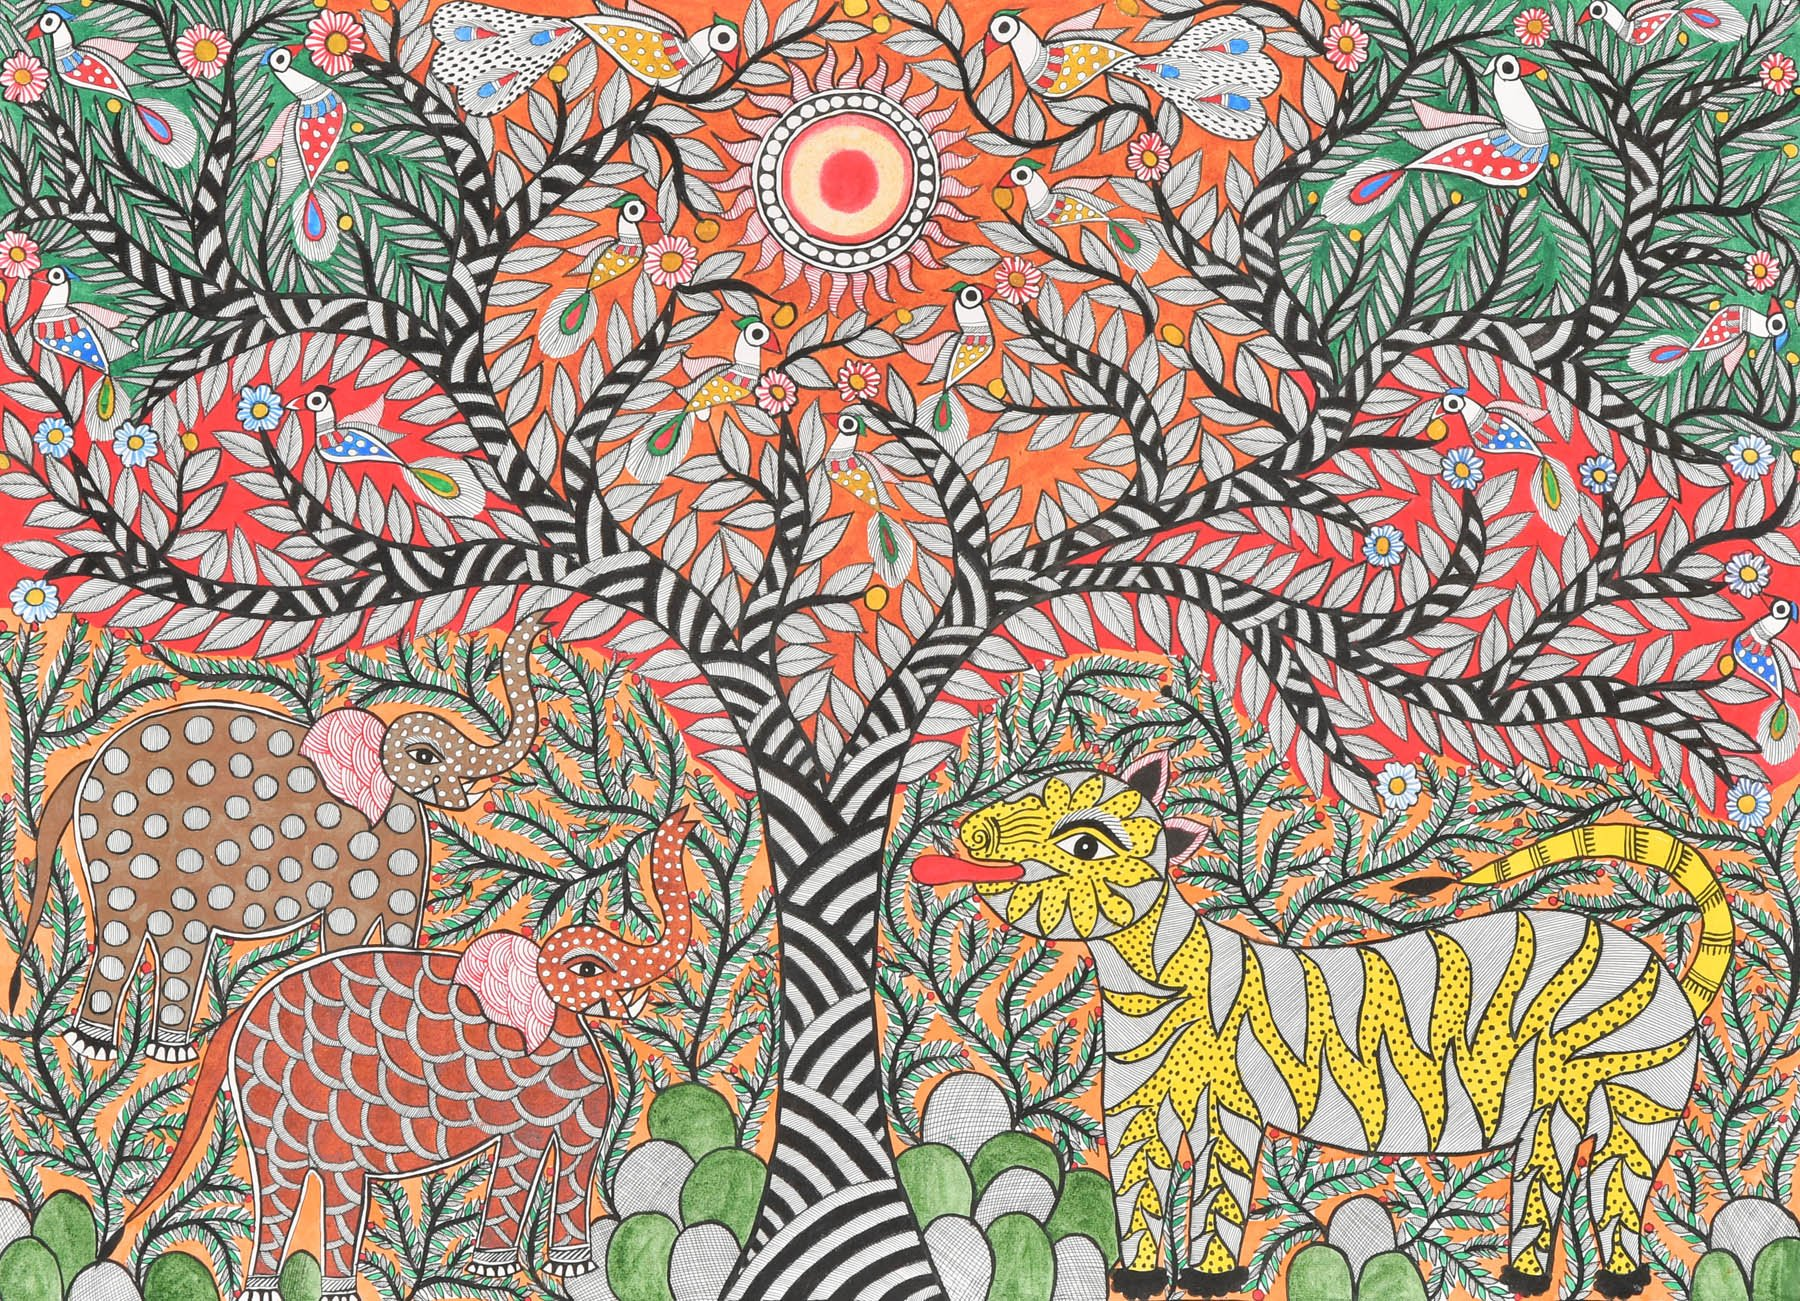 Tree of Life with Elephant Pair Tiger and Peacock - Madhubani Painting on Hand Made Paper - Folk Pai